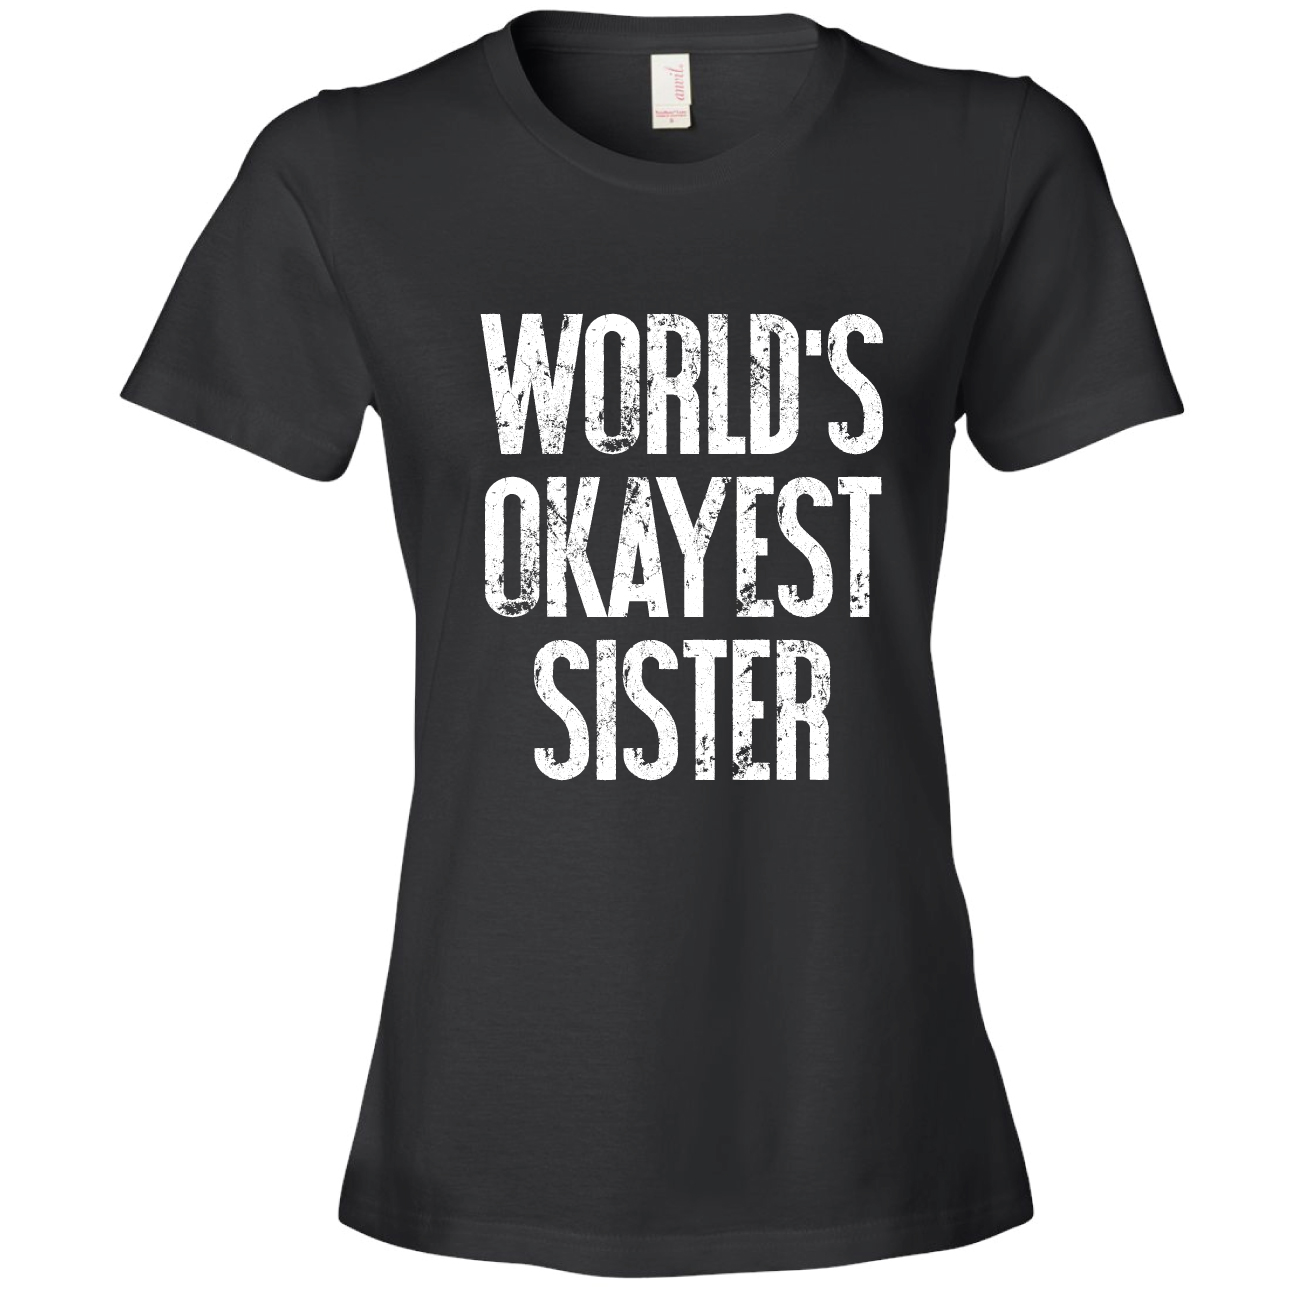 98babd2df Feisty and Fabulous - Brand: World's Okayest Sister T-Shirt, Funny Gift,  Gray Large - Walmart.com